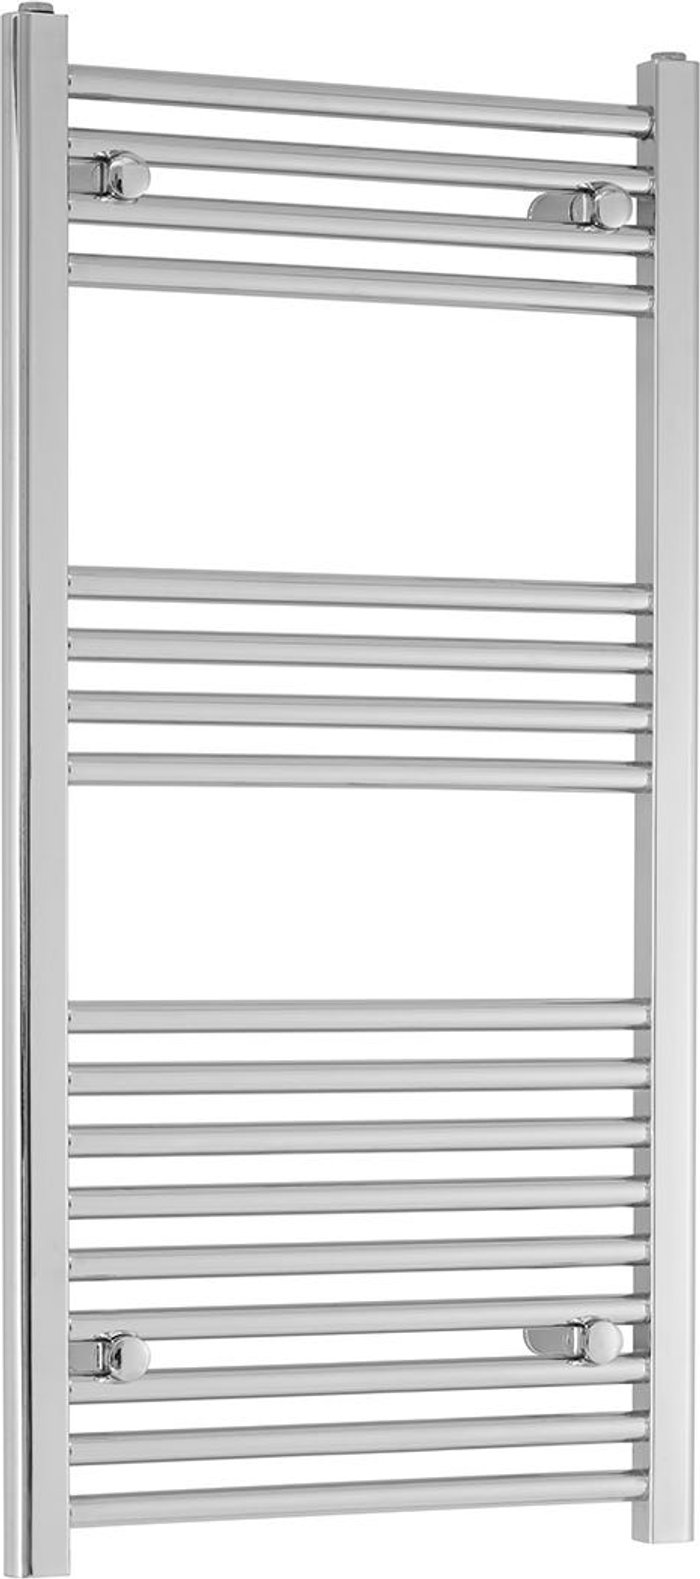 Towelrads Towelrads Heating Style Blythe Ladder Rail 1000x500mm Straight -Chrome